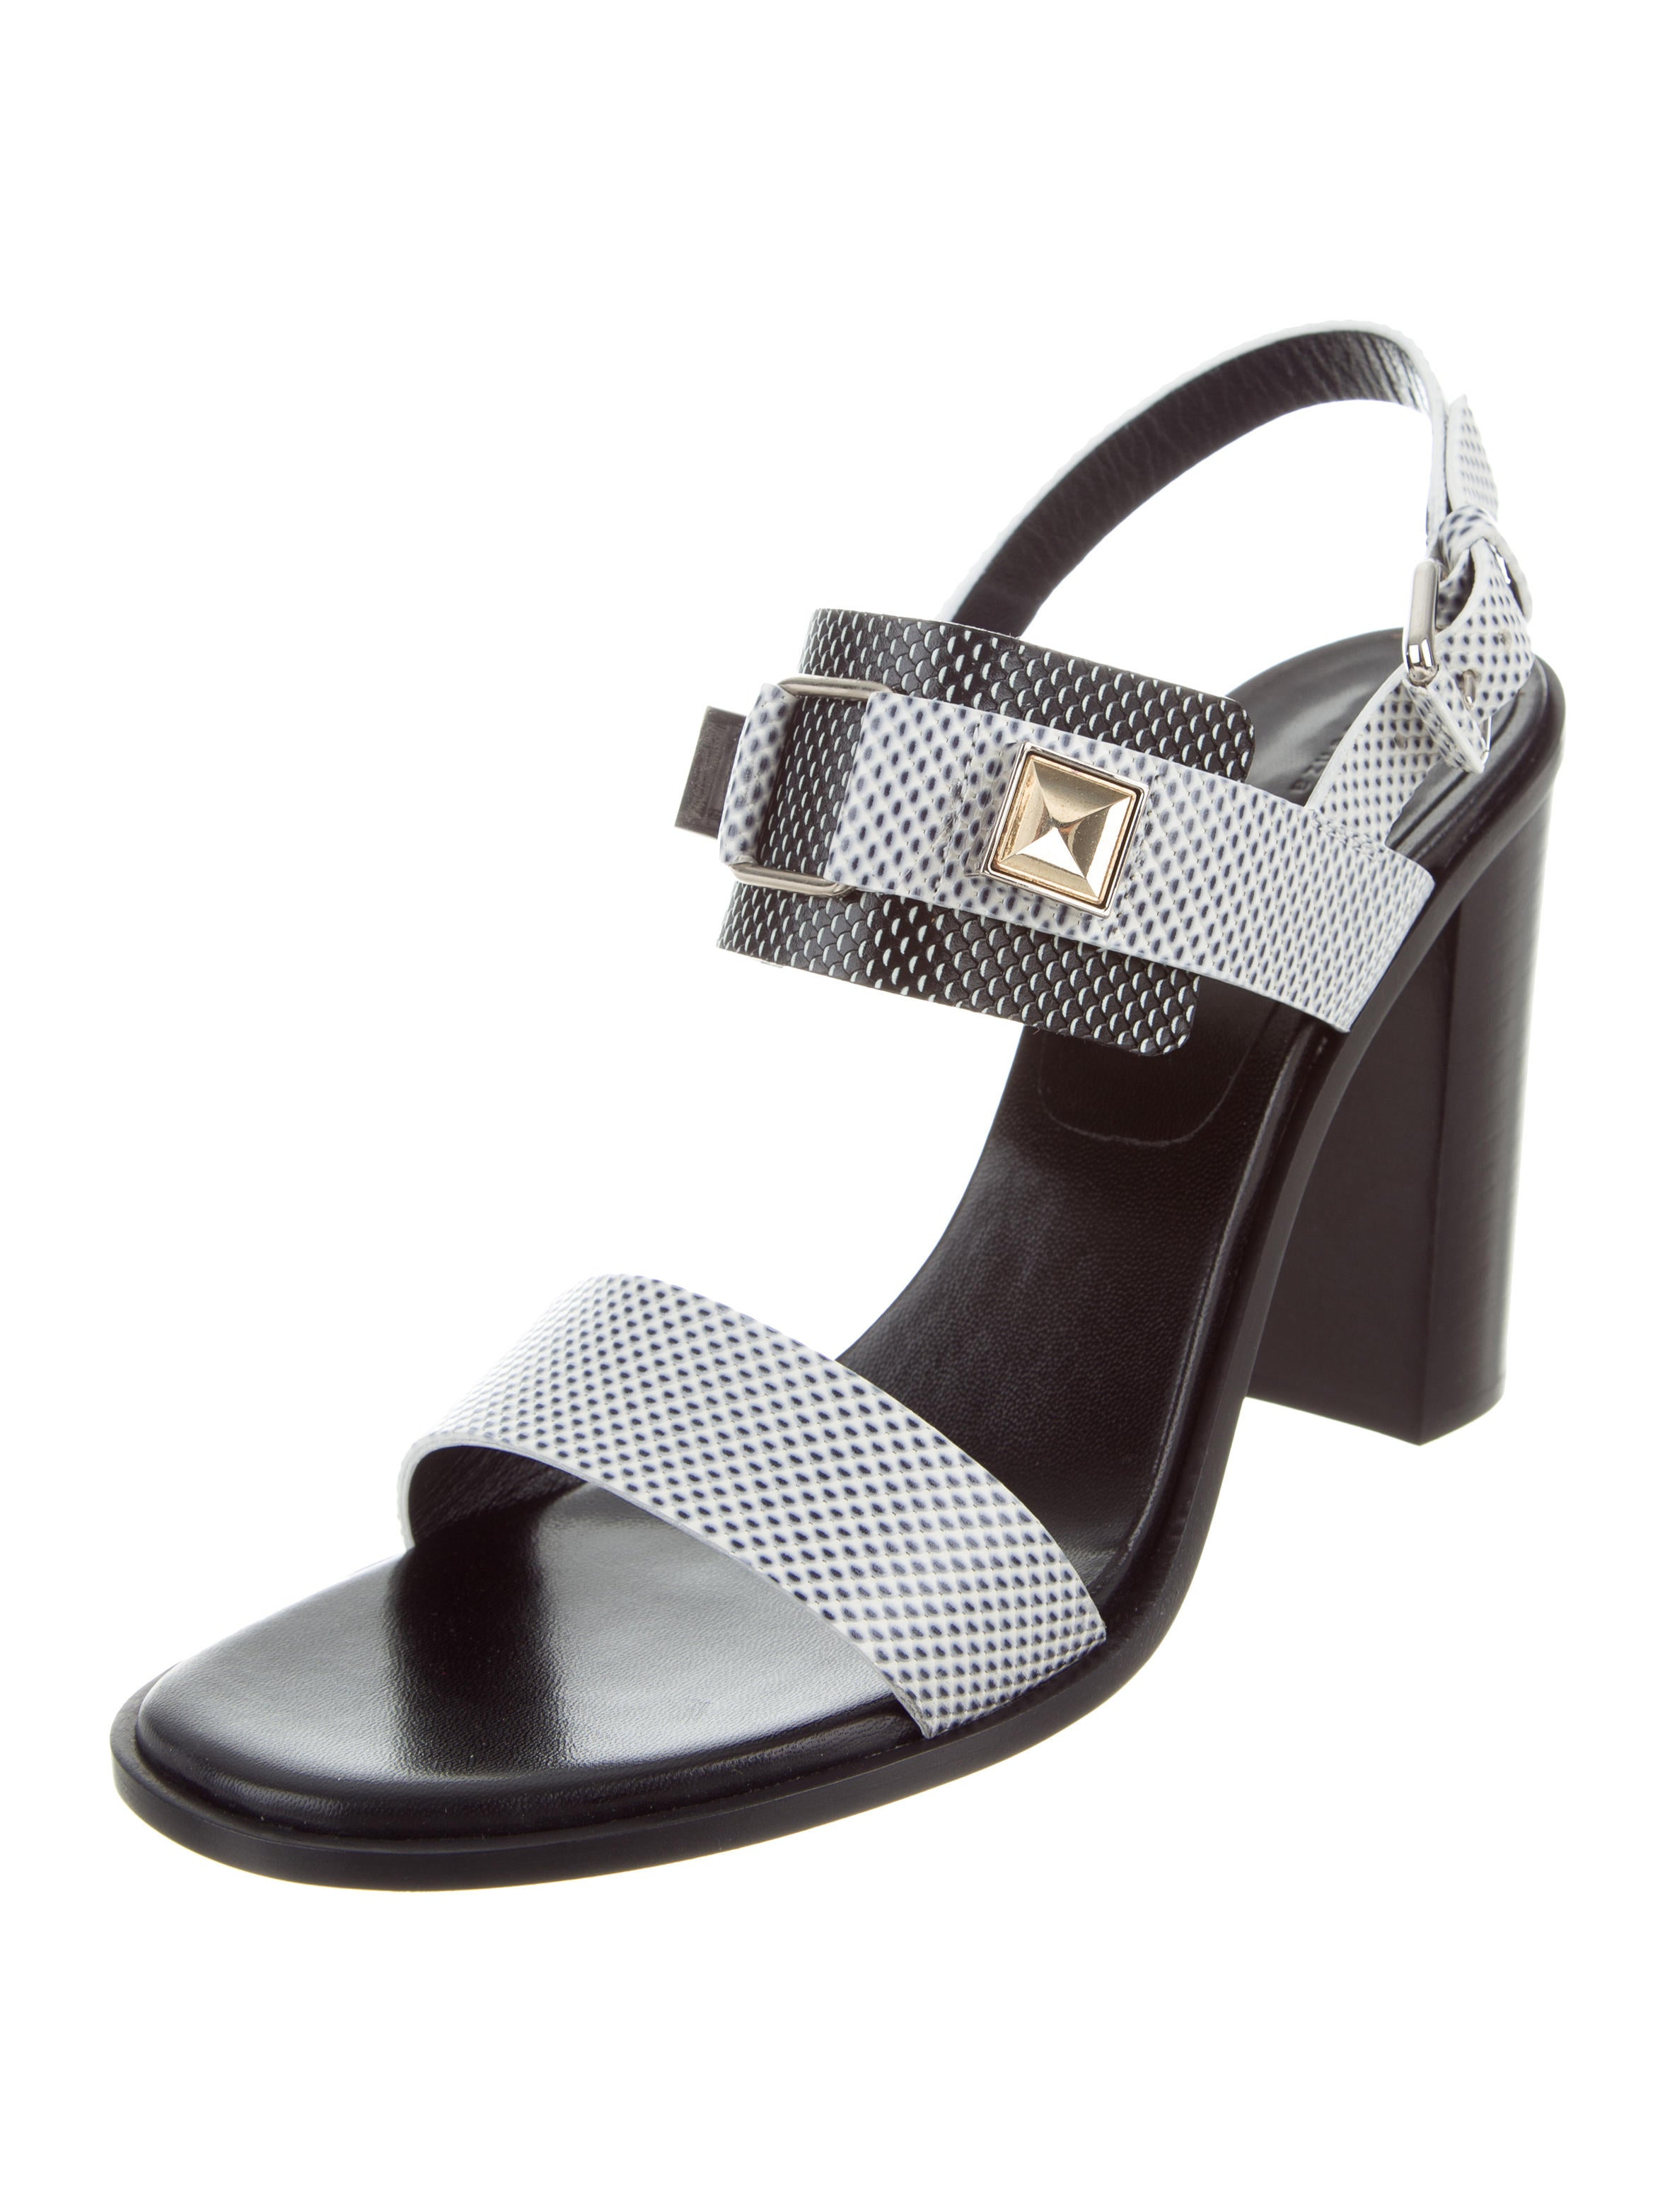 Proenza Schouler Harmon Leather Sandals w/ Tags low cost sale online cheap outlet locations CMjUQUMO0